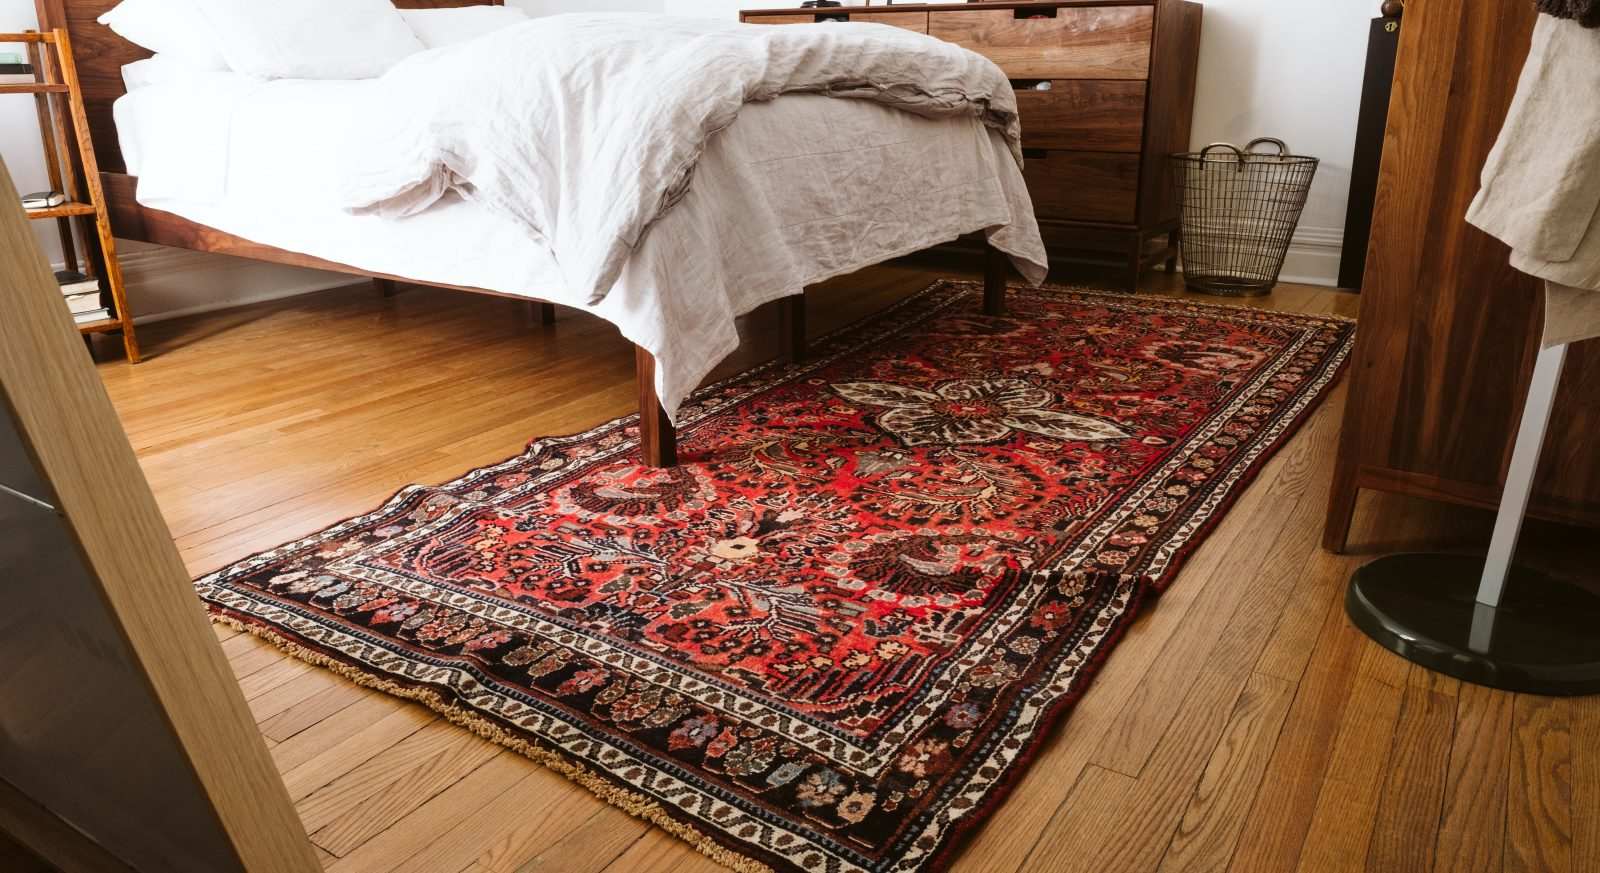 How To Choose The Right Rug Size For Your Bedroom Ambitious Home